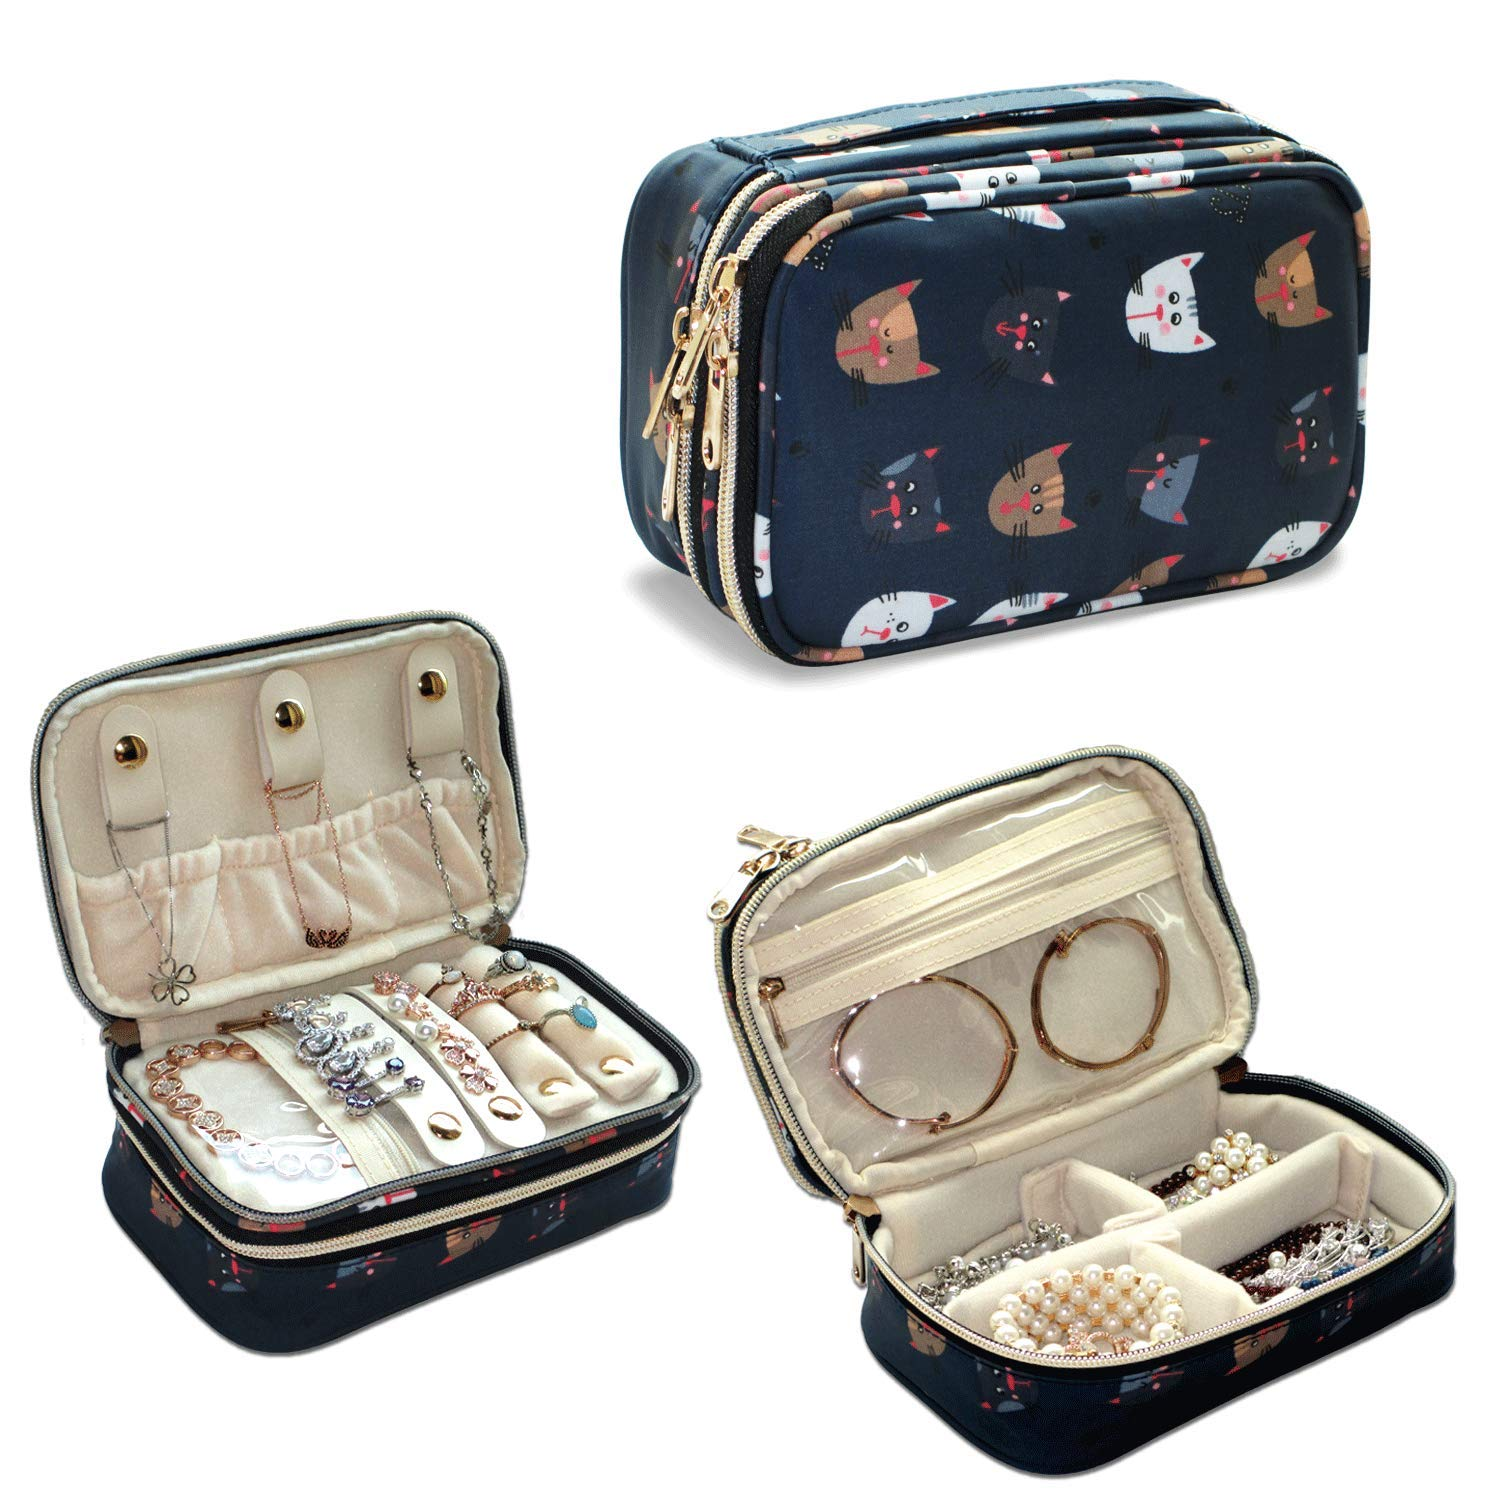 Q-smile Travel Jewelry Case Jewelry Organizer Bag Double Layer Storage Carrying Pouch Holder for Necklaces, Earrings, Bracelets, Rings, Watch and More,Compact and Portable (Dark Blue-Cat, Small)